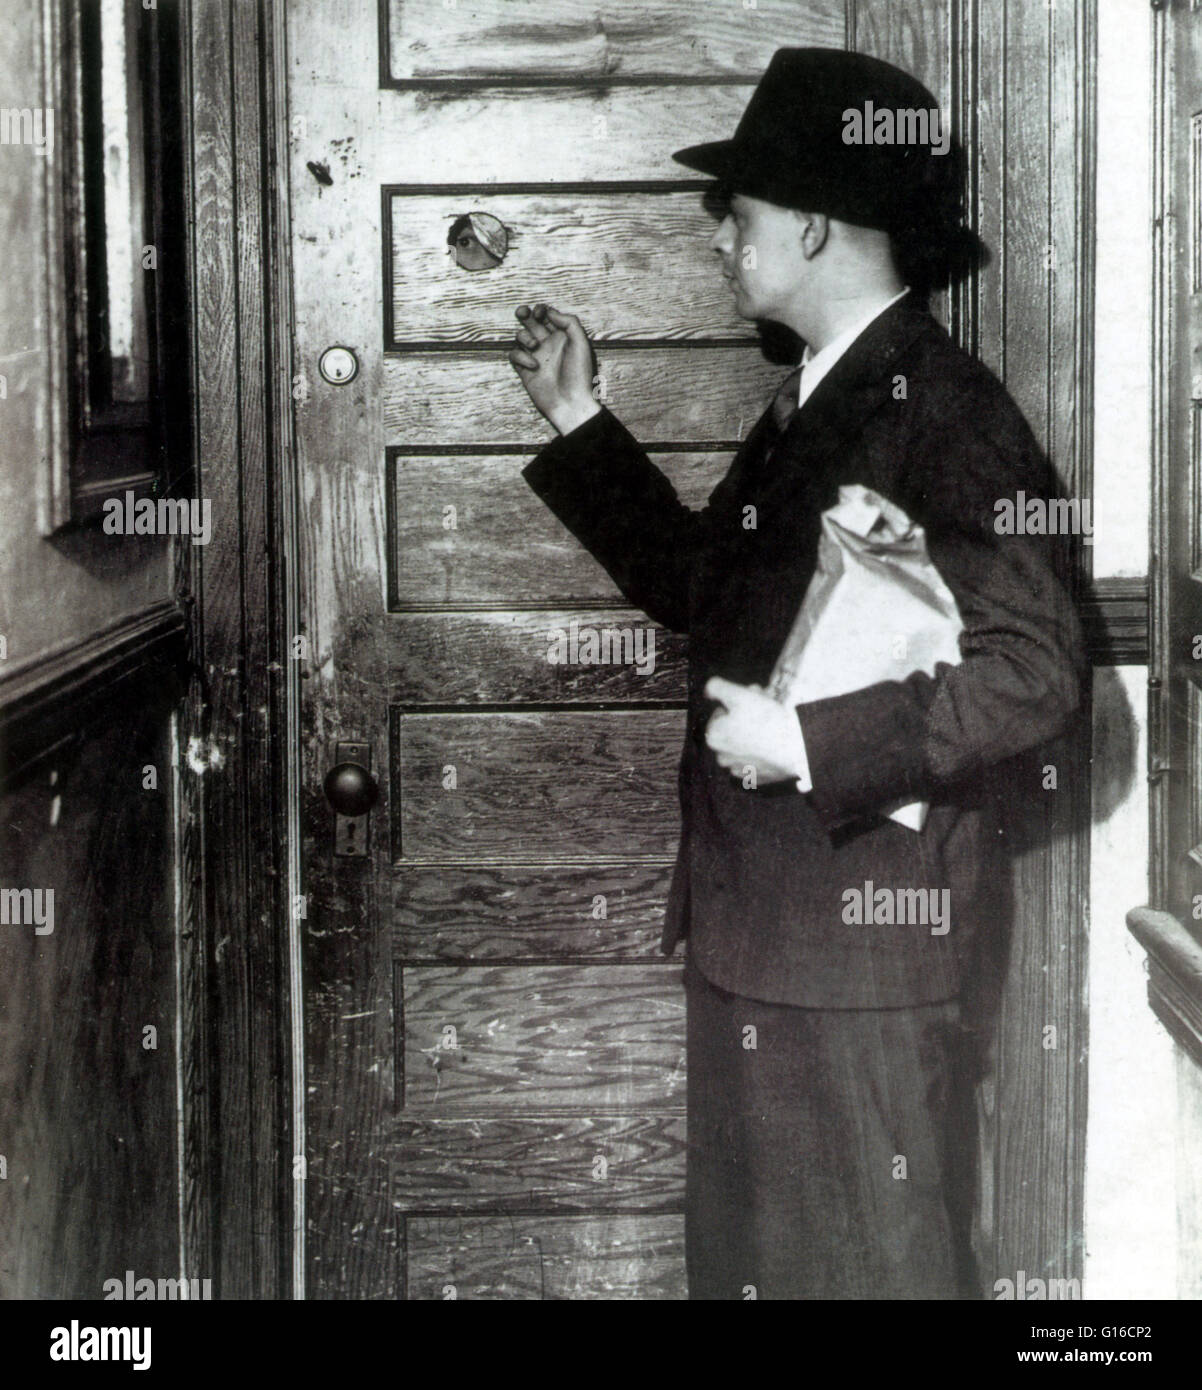 A Patron Knocks At The Door Of A Speakeasy. Note Peephole In The Door. A  Peephole Allowed People Inside The Security Of Seeing Outside Without  Opening The ...